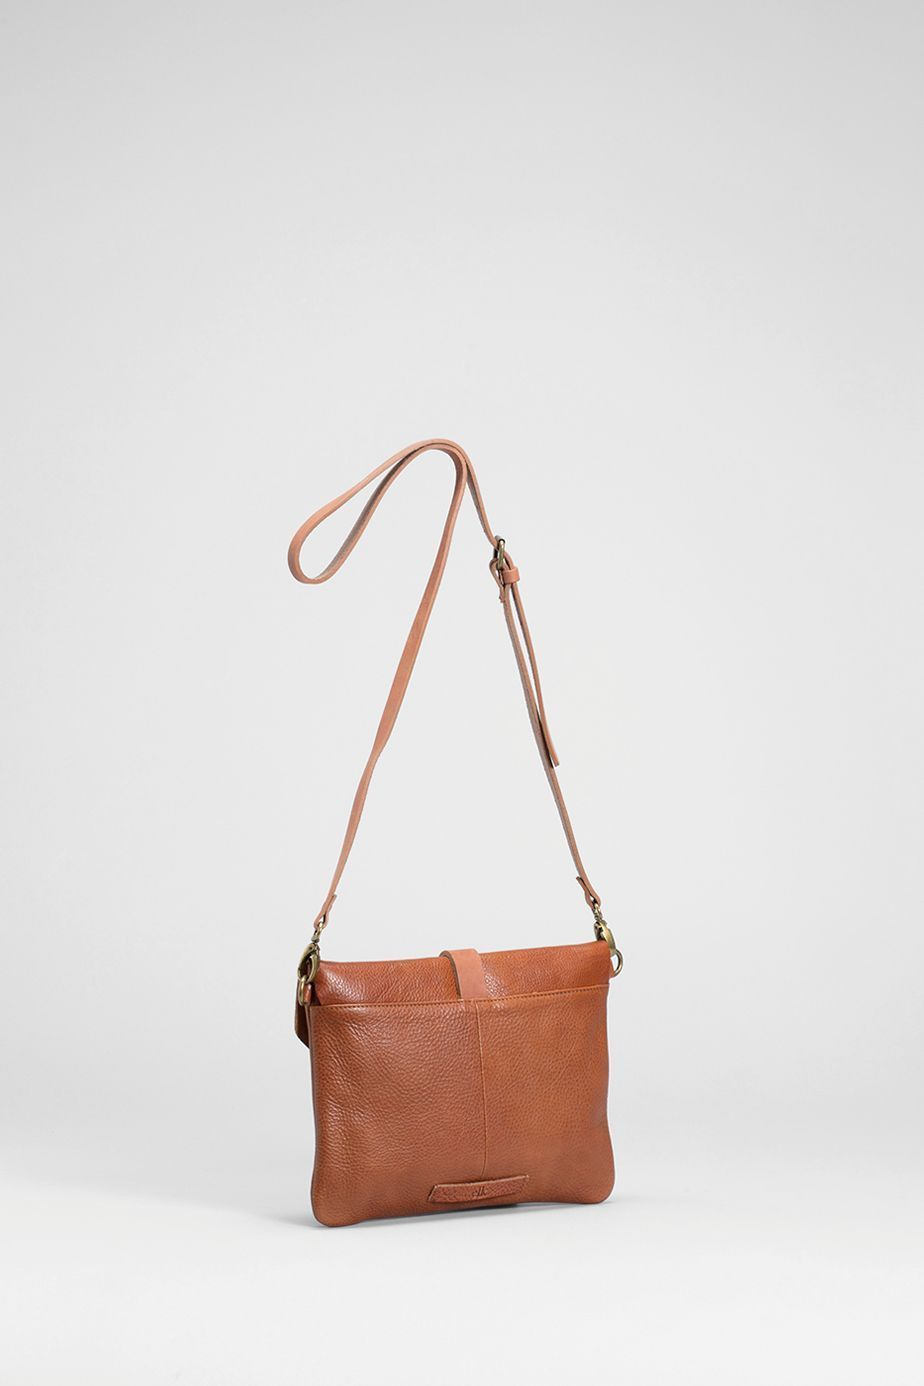 Las Small Leather Bag Small Leather Bag Leather Bags Online Leather Bags Handmade